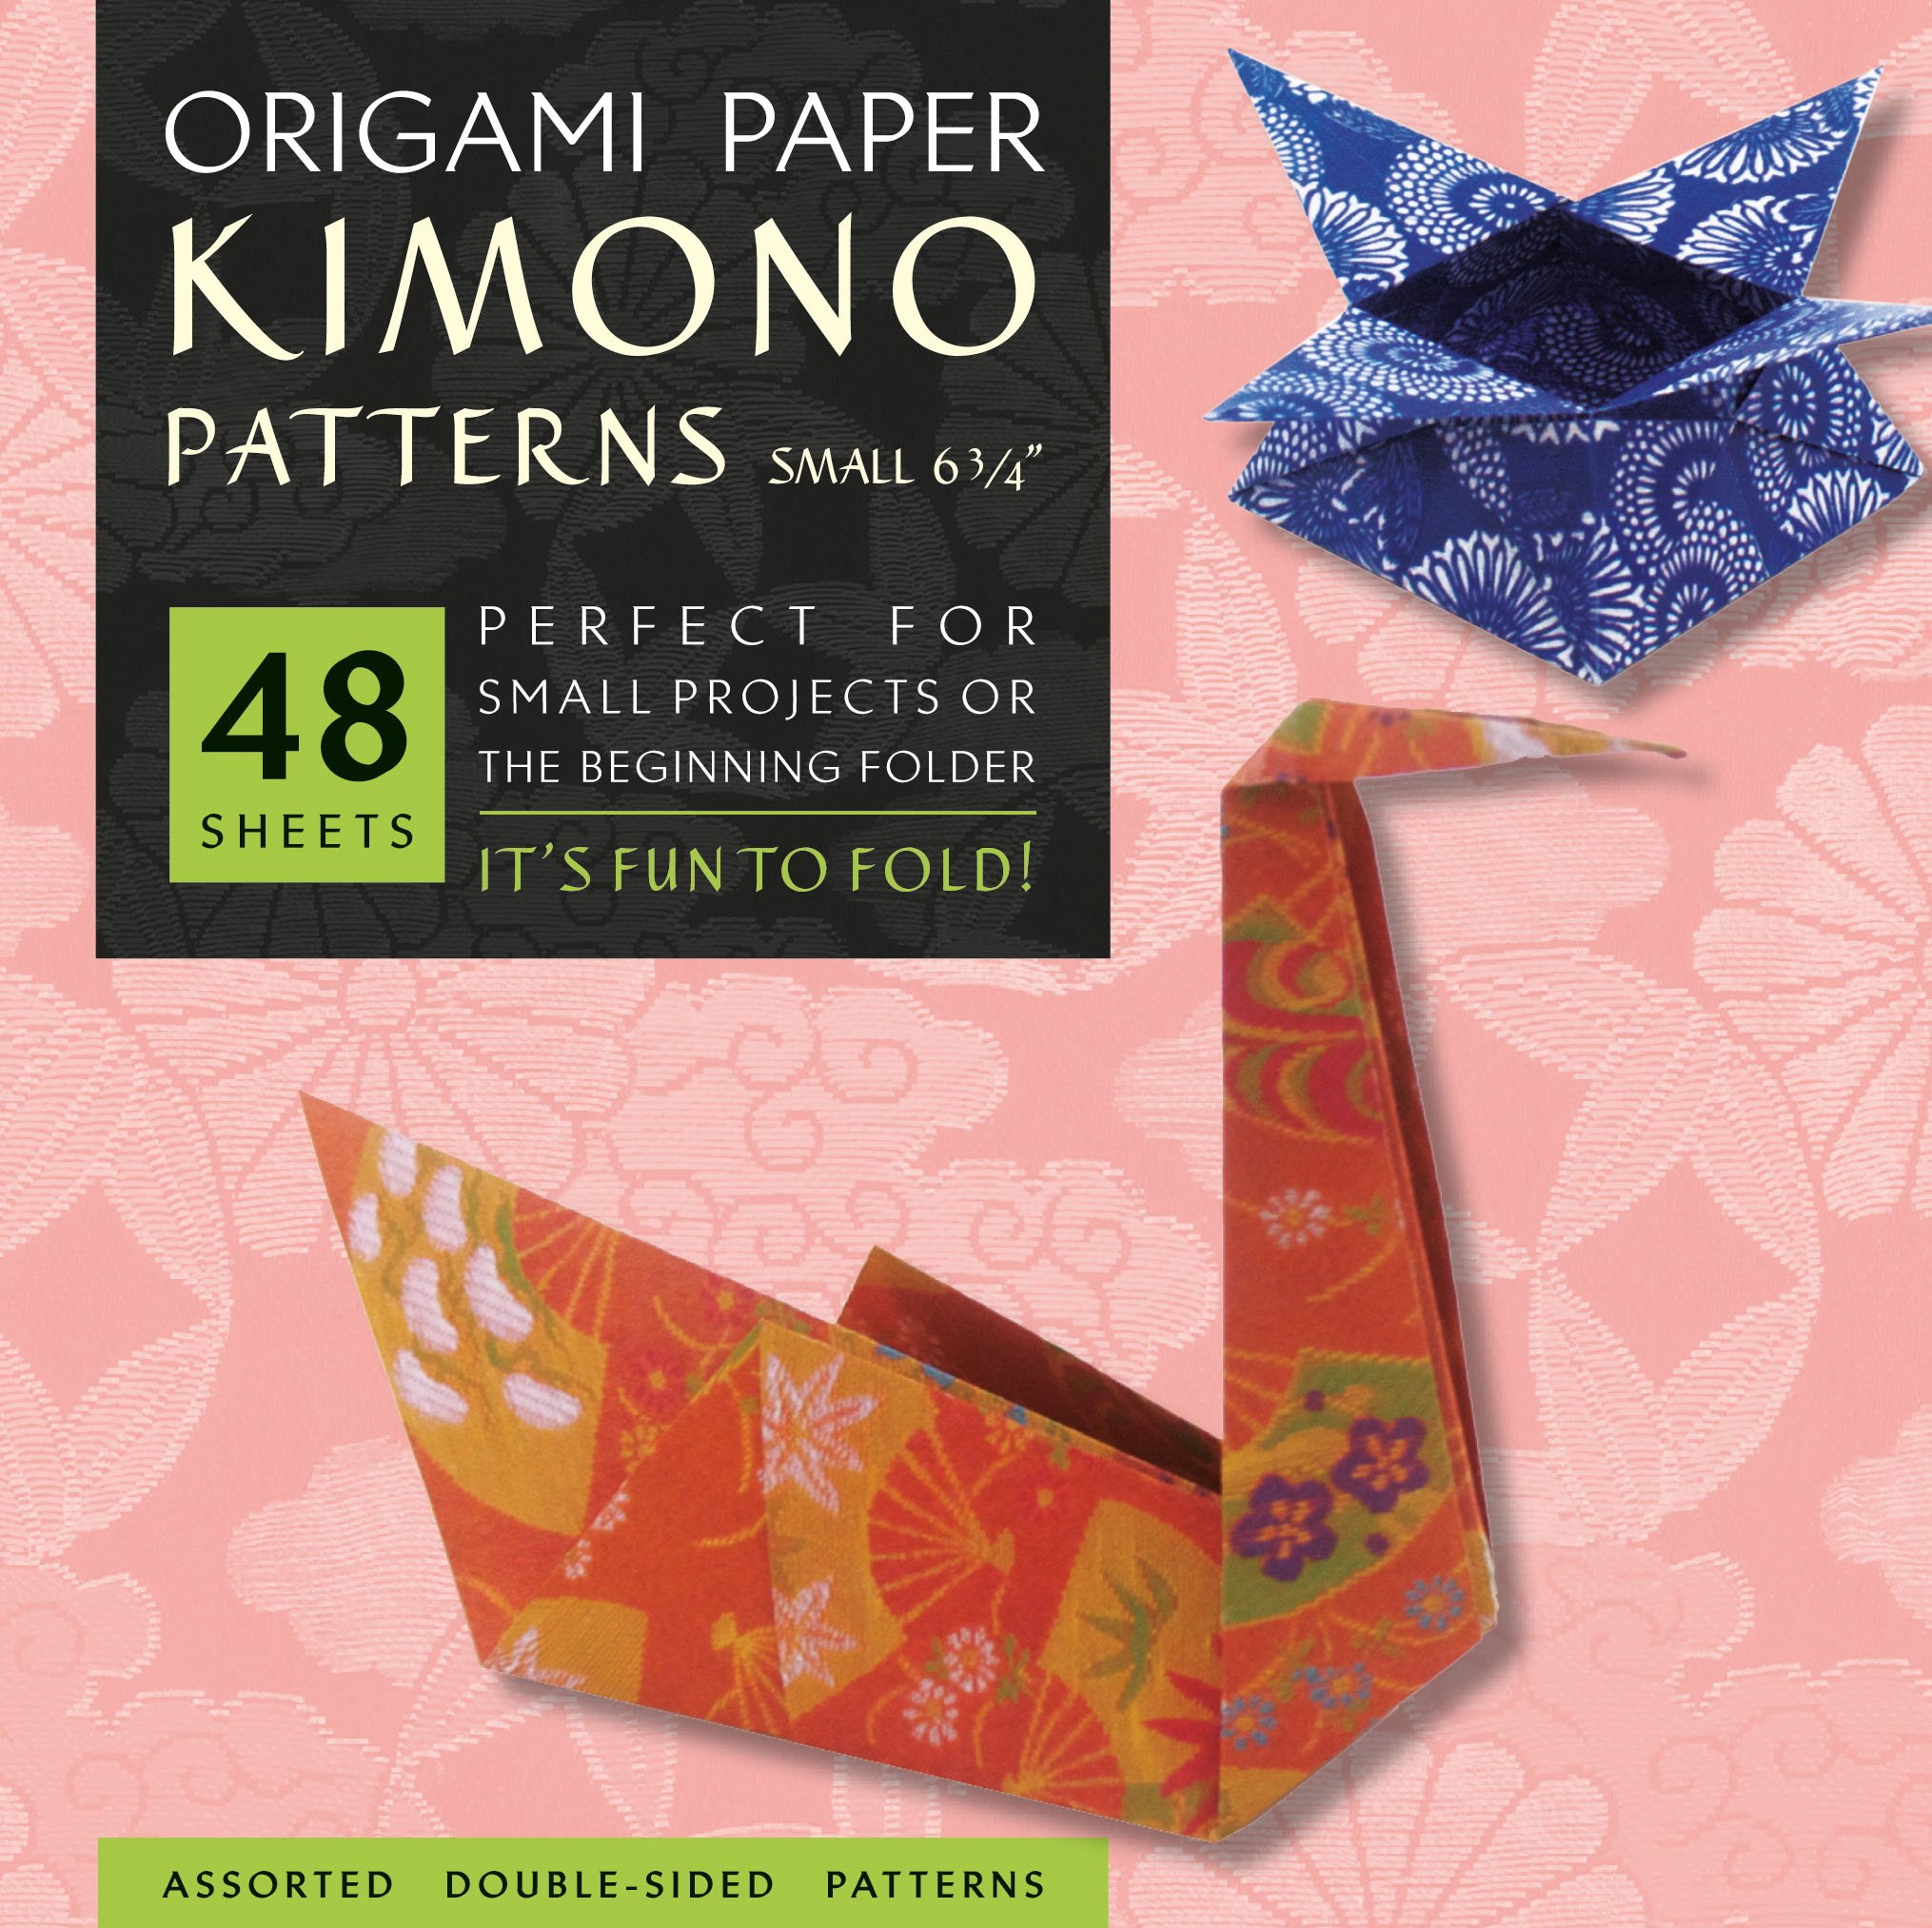 "Read Online Origami Paper - Kimono Patterns - Small 6 3/4"" - 48 Sheets: Tuttle Origami Paper: High-Quality Origami Sheets Printed with 8 Different Designs: Instructions for 6 Projects Included PDF"